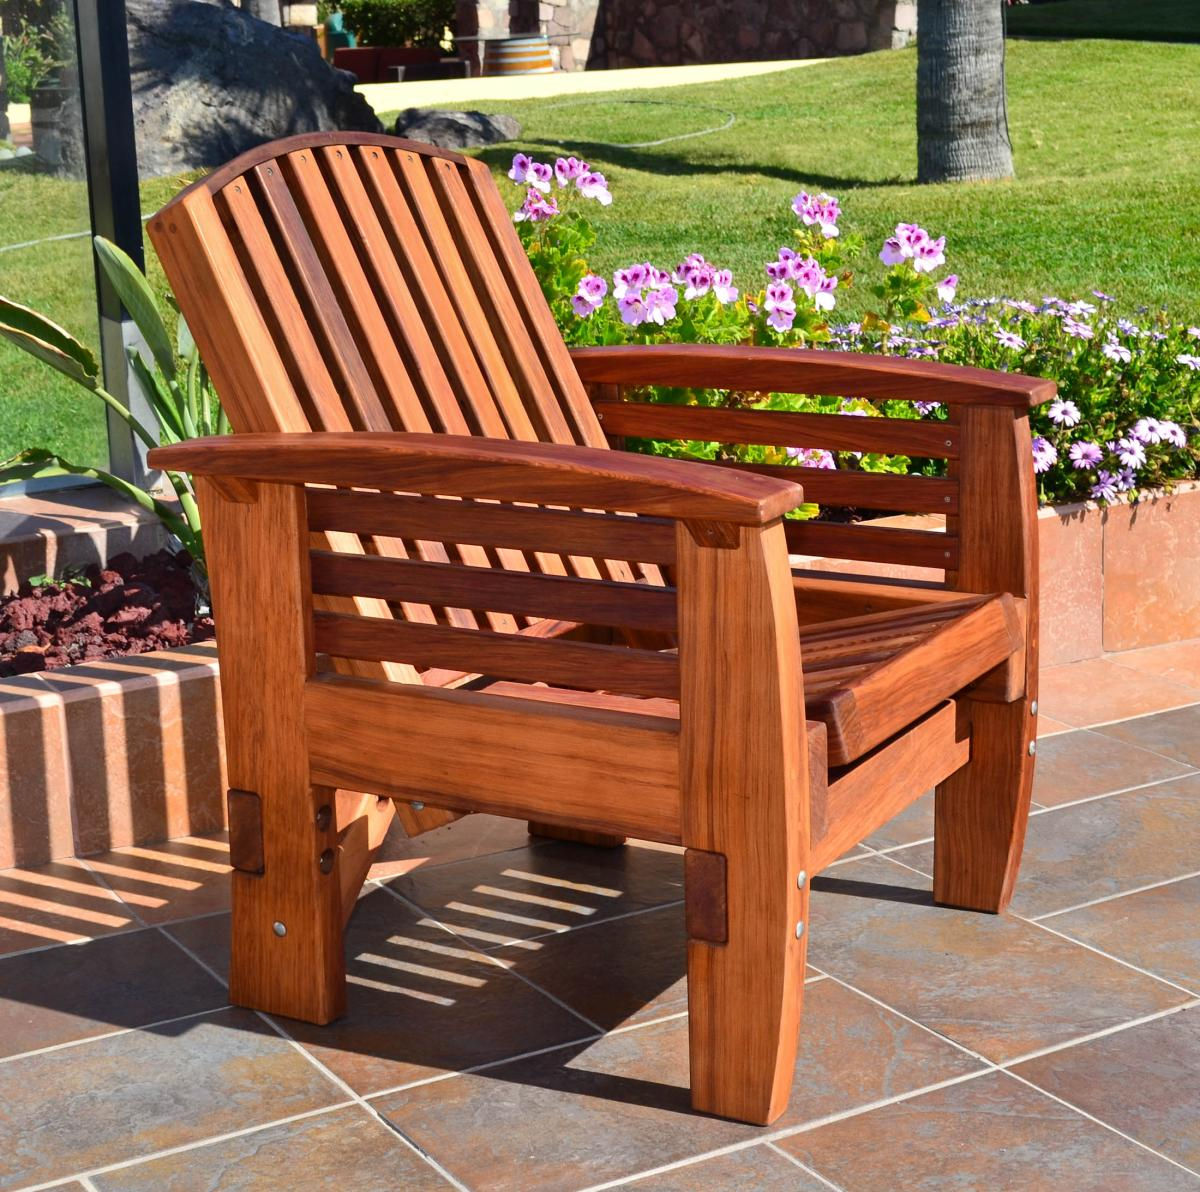 Reclining Redwood Easy Chair Outdoor Wood Recliners